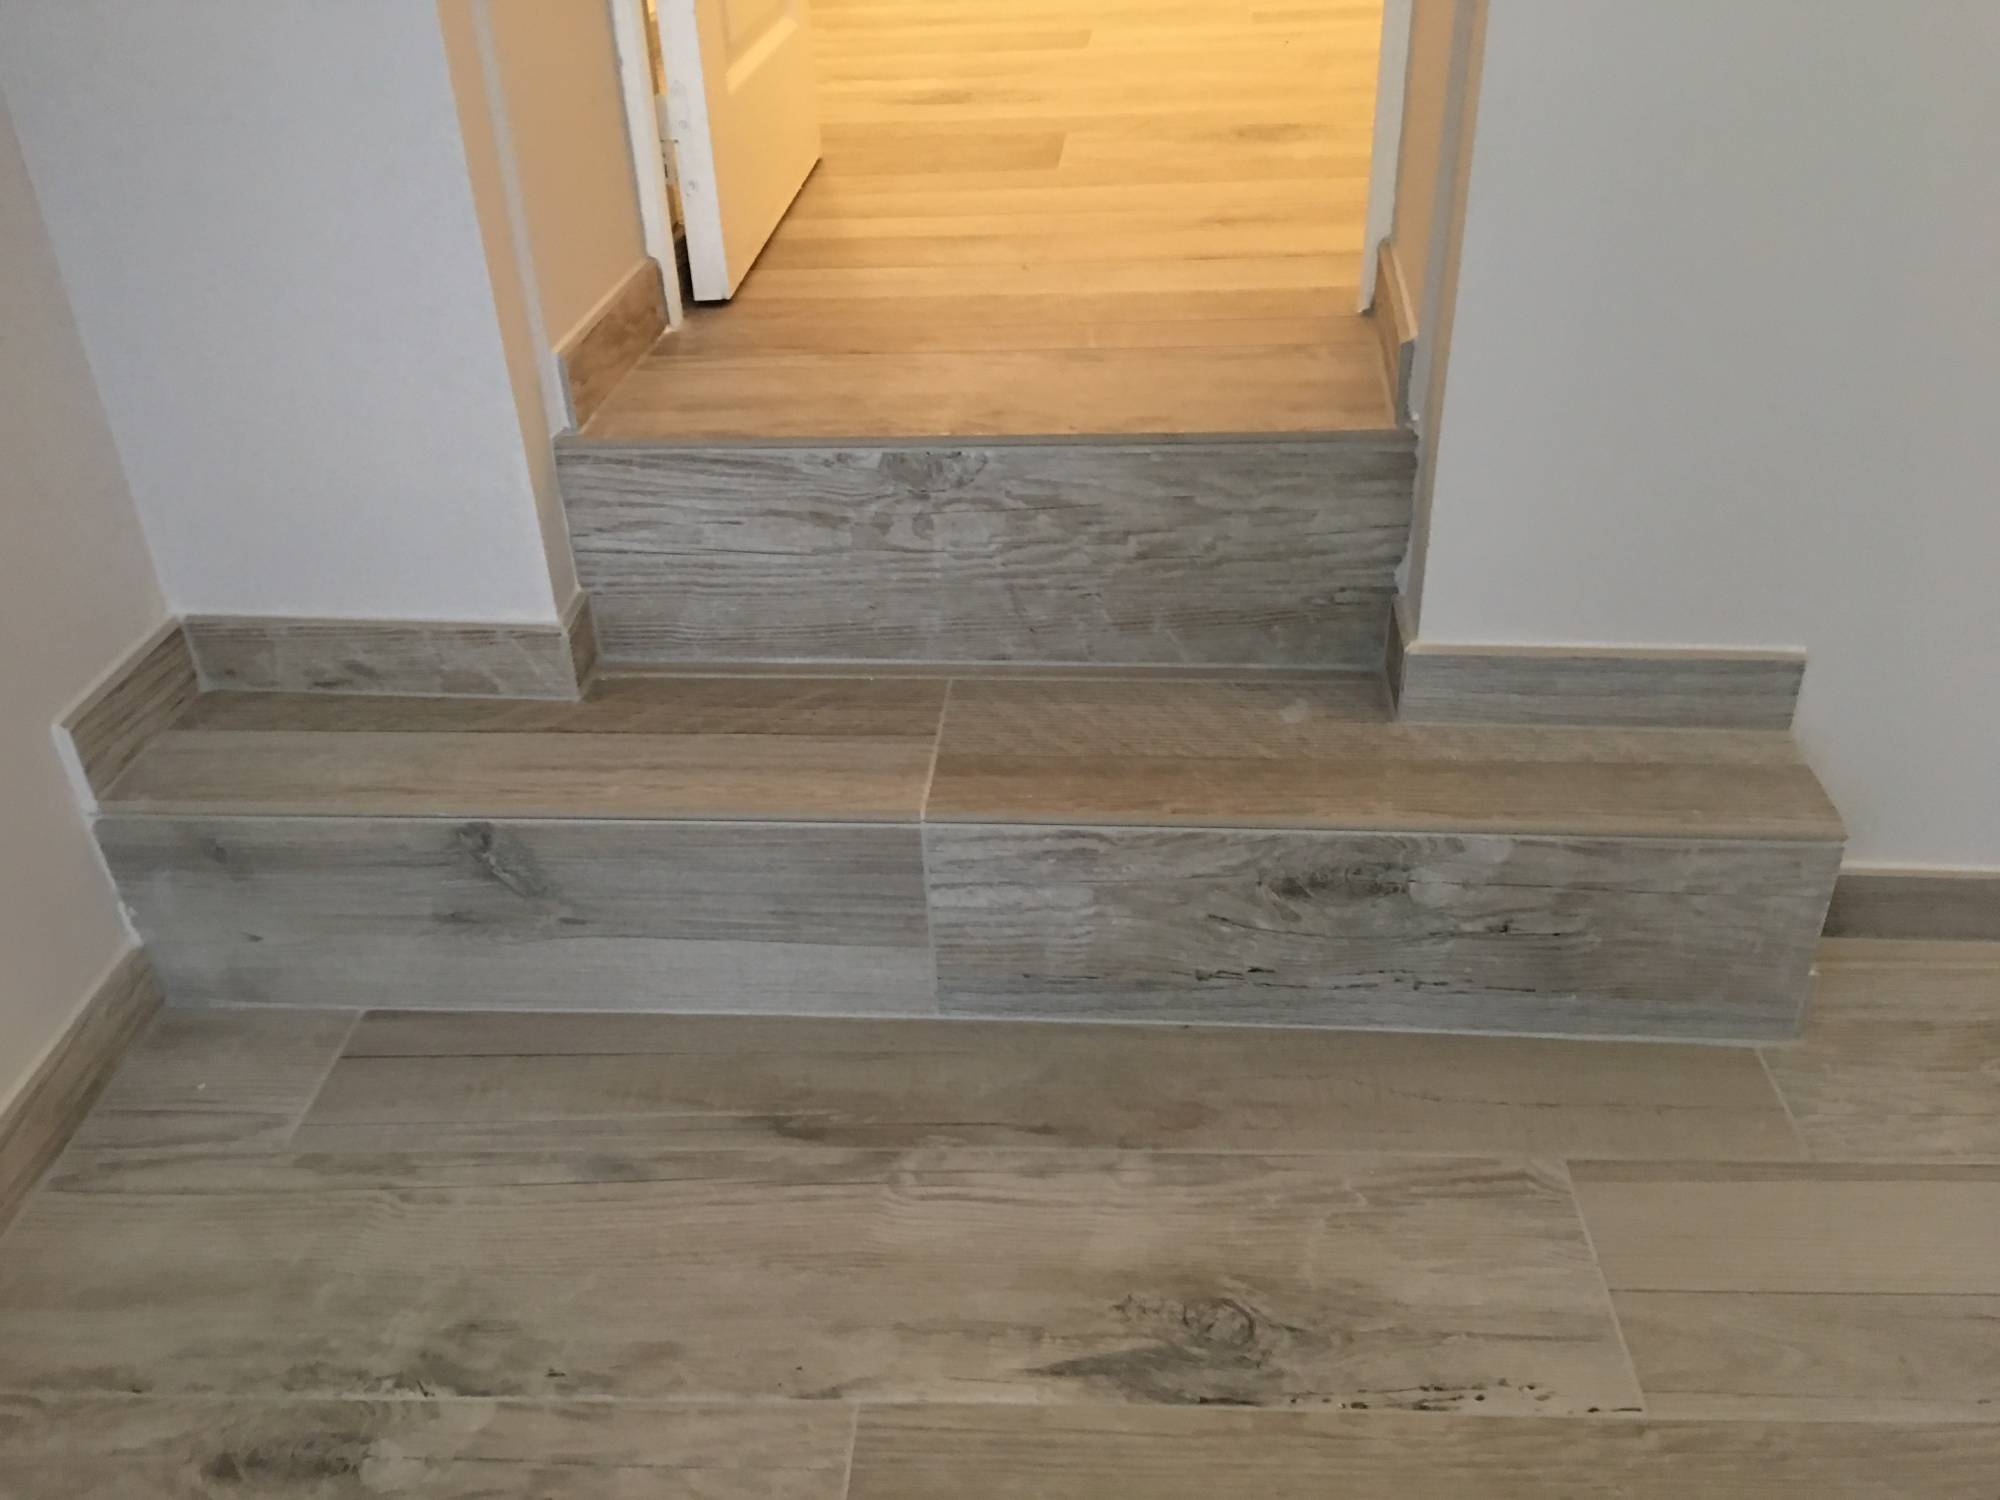 R novation sol appartement en carrelage imitation bois aix for Porcelanosa carrelage exterieur imitation bois